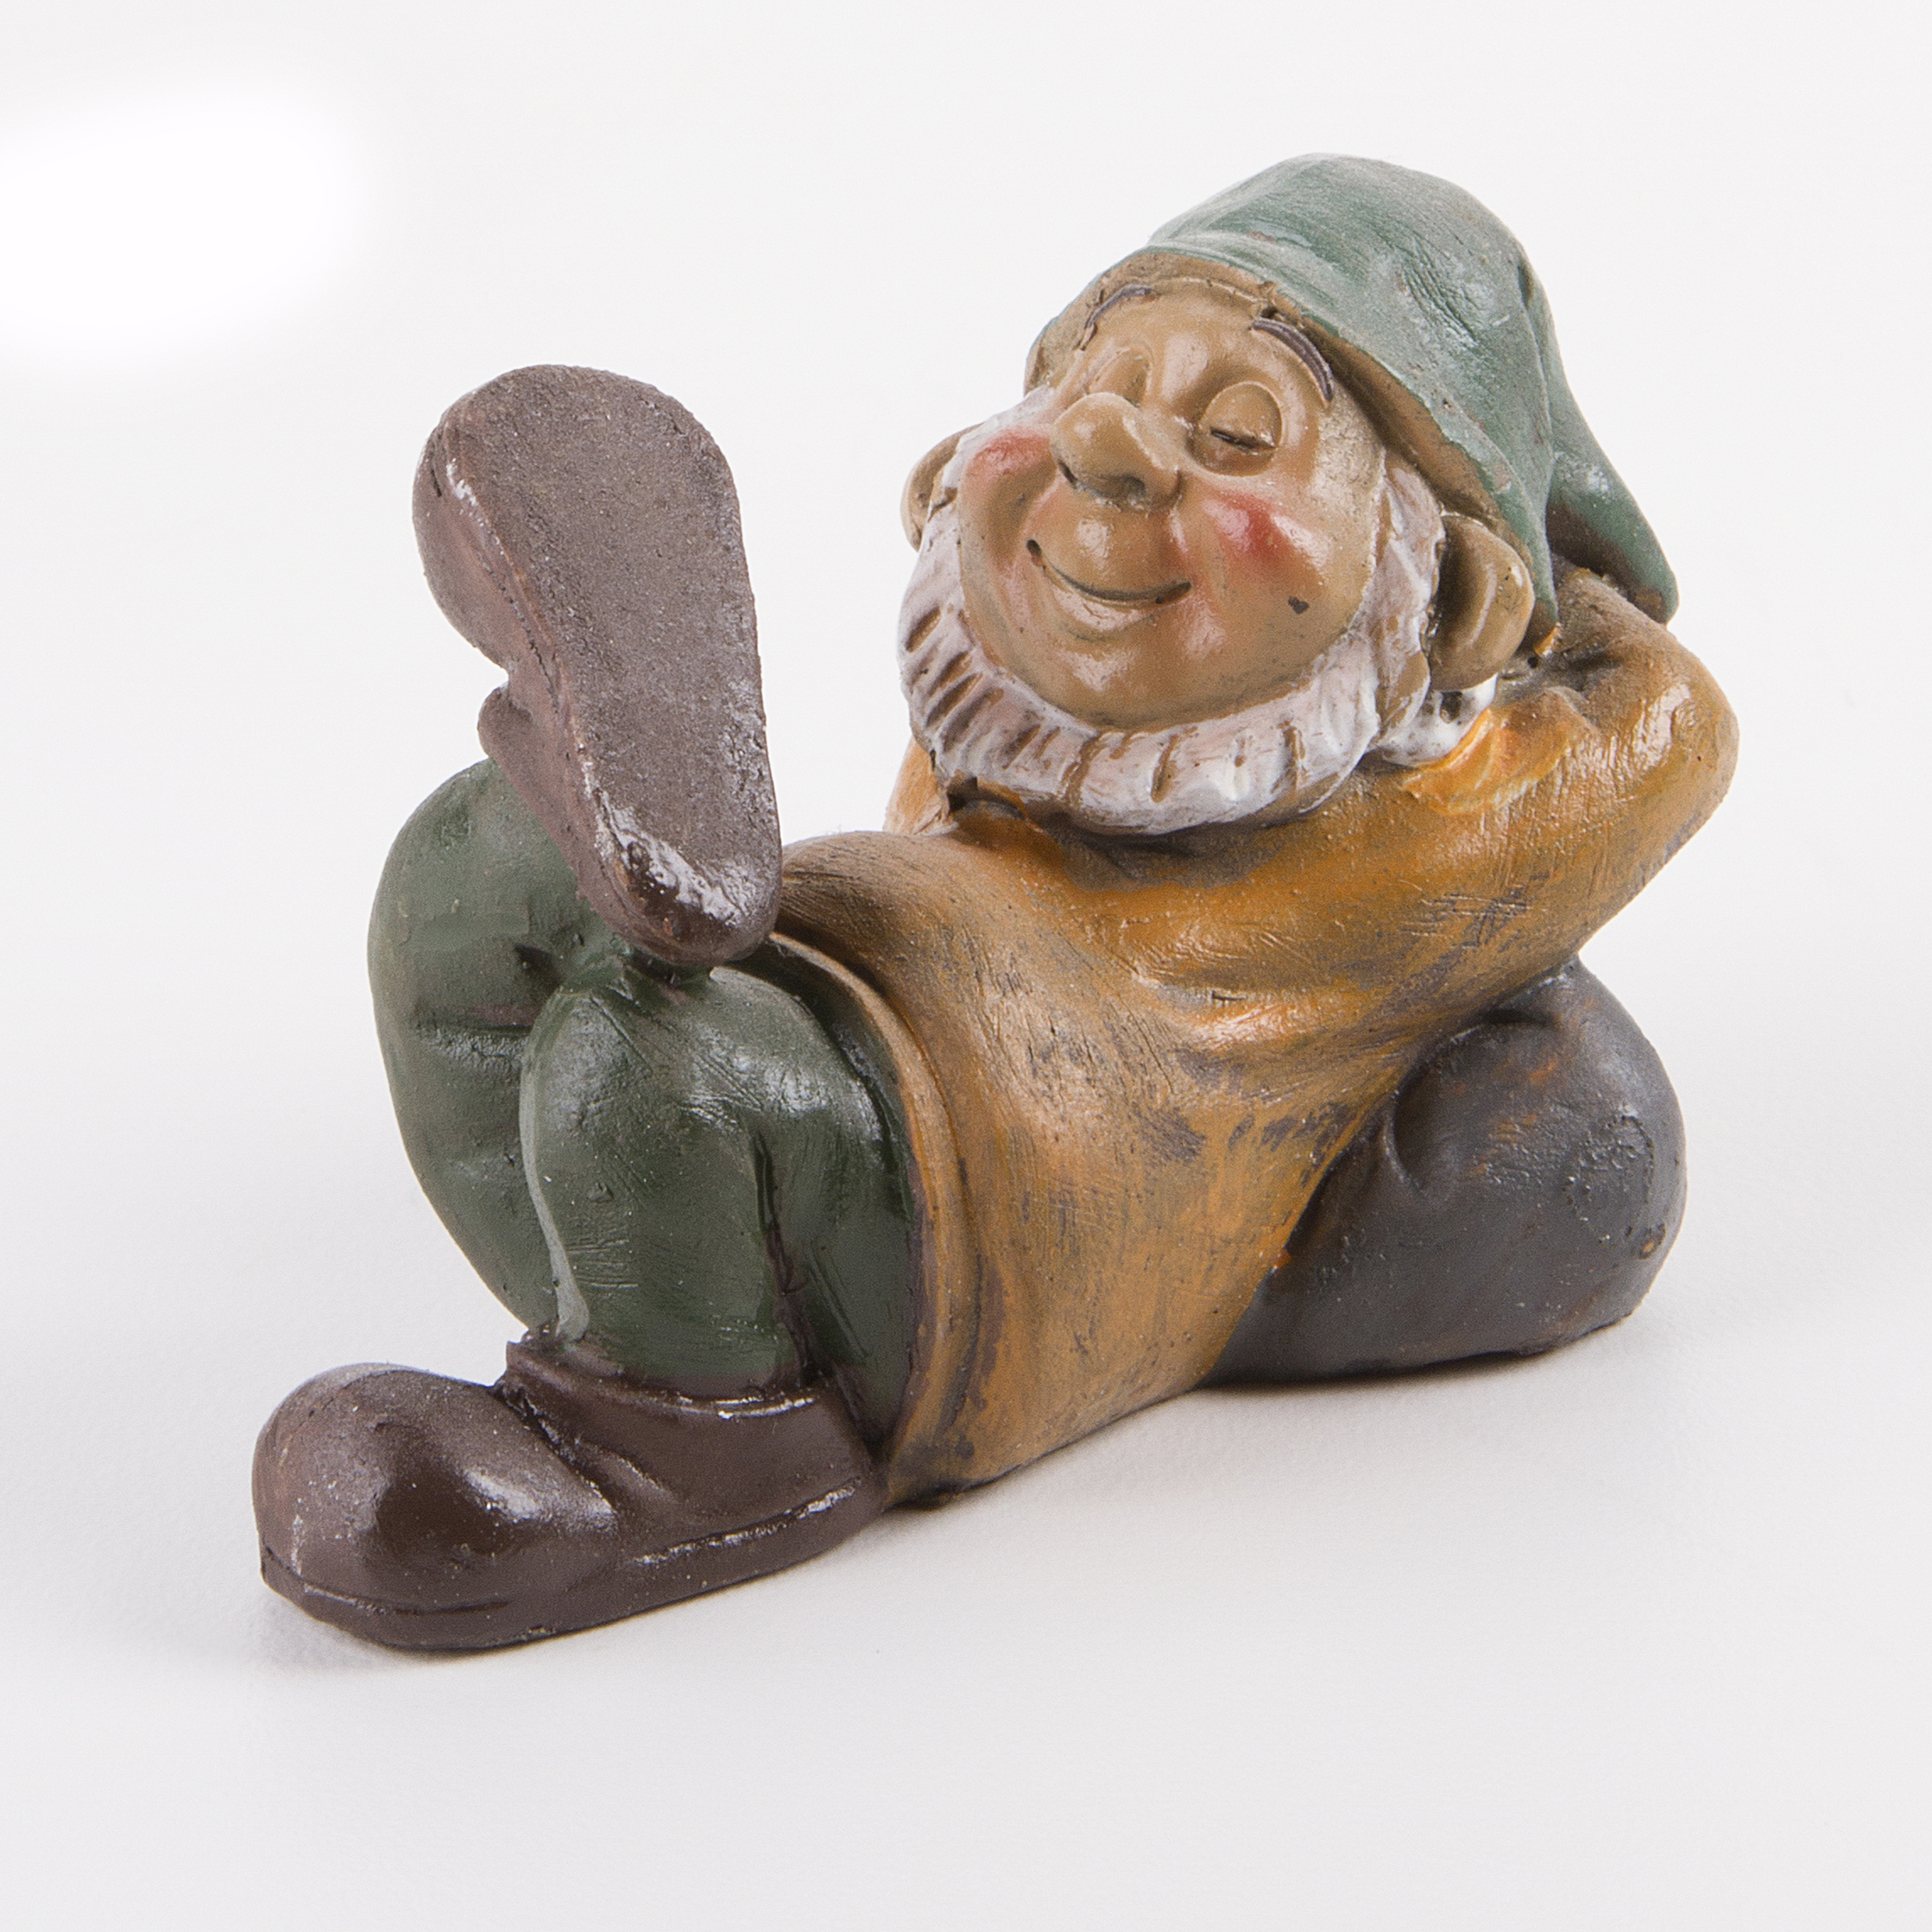 Darice Yard and Garden Minis Sleeping Gnome Boy Resin 2.75 Inches